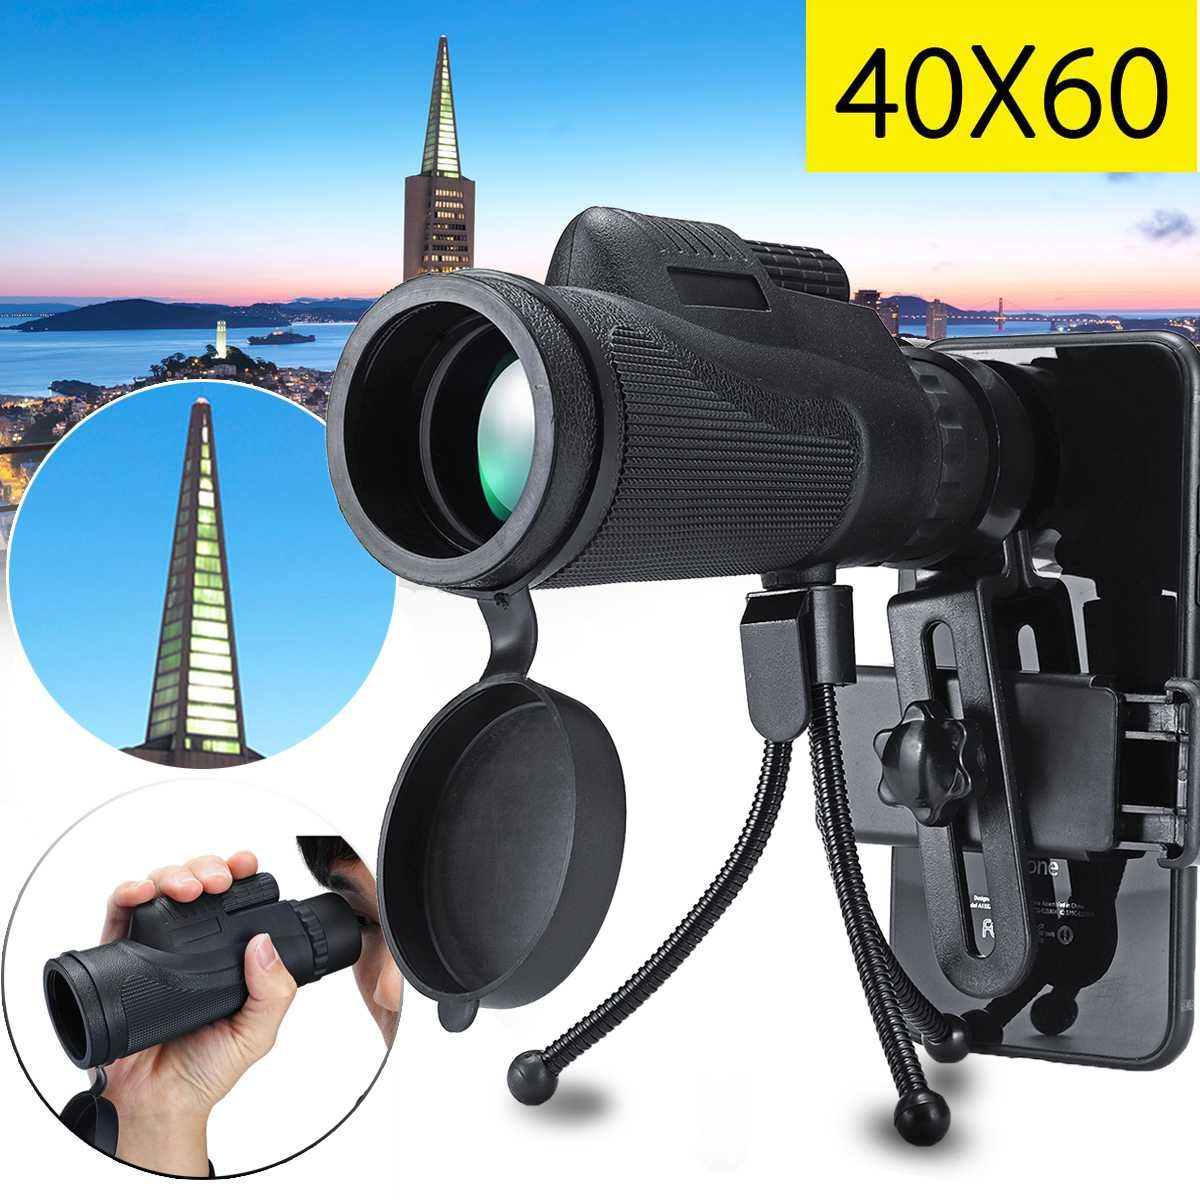 40X60 Telephone Telescope Lens Smartphone Monocular Telescope Scope Camera Camping Hiking Fishing with Mobile Phone Clip Tripod